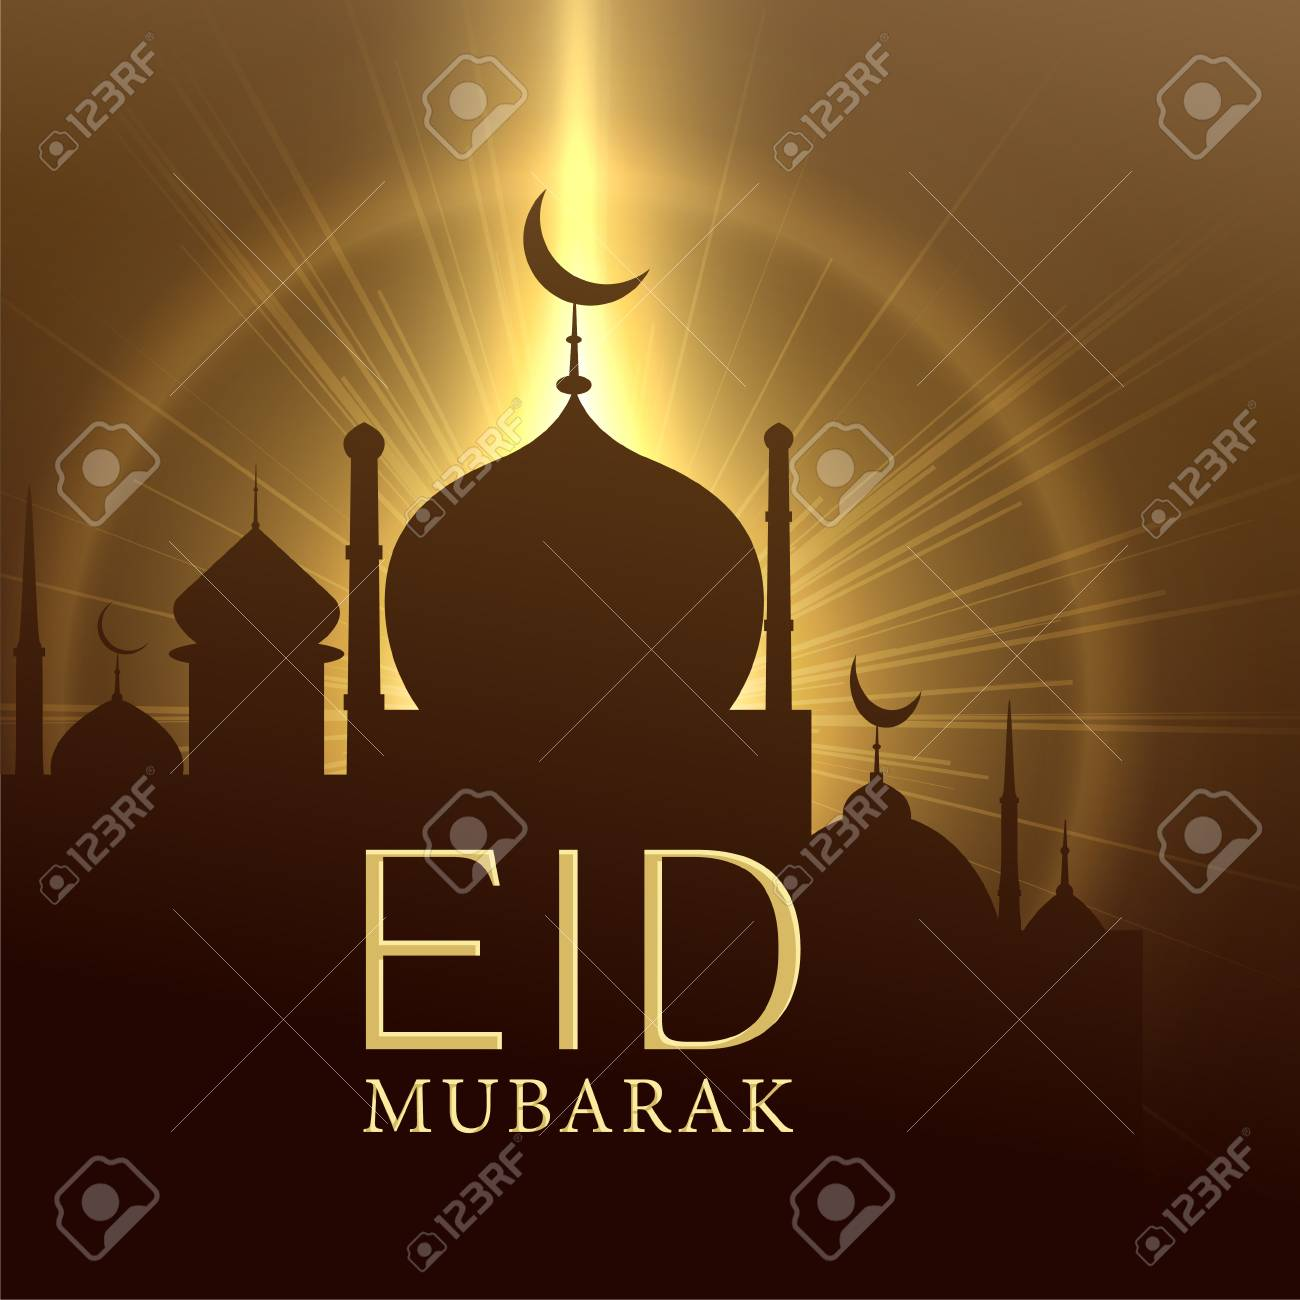 Mosque With Glowing Light Eid Mubarak Greeting Royalty Free